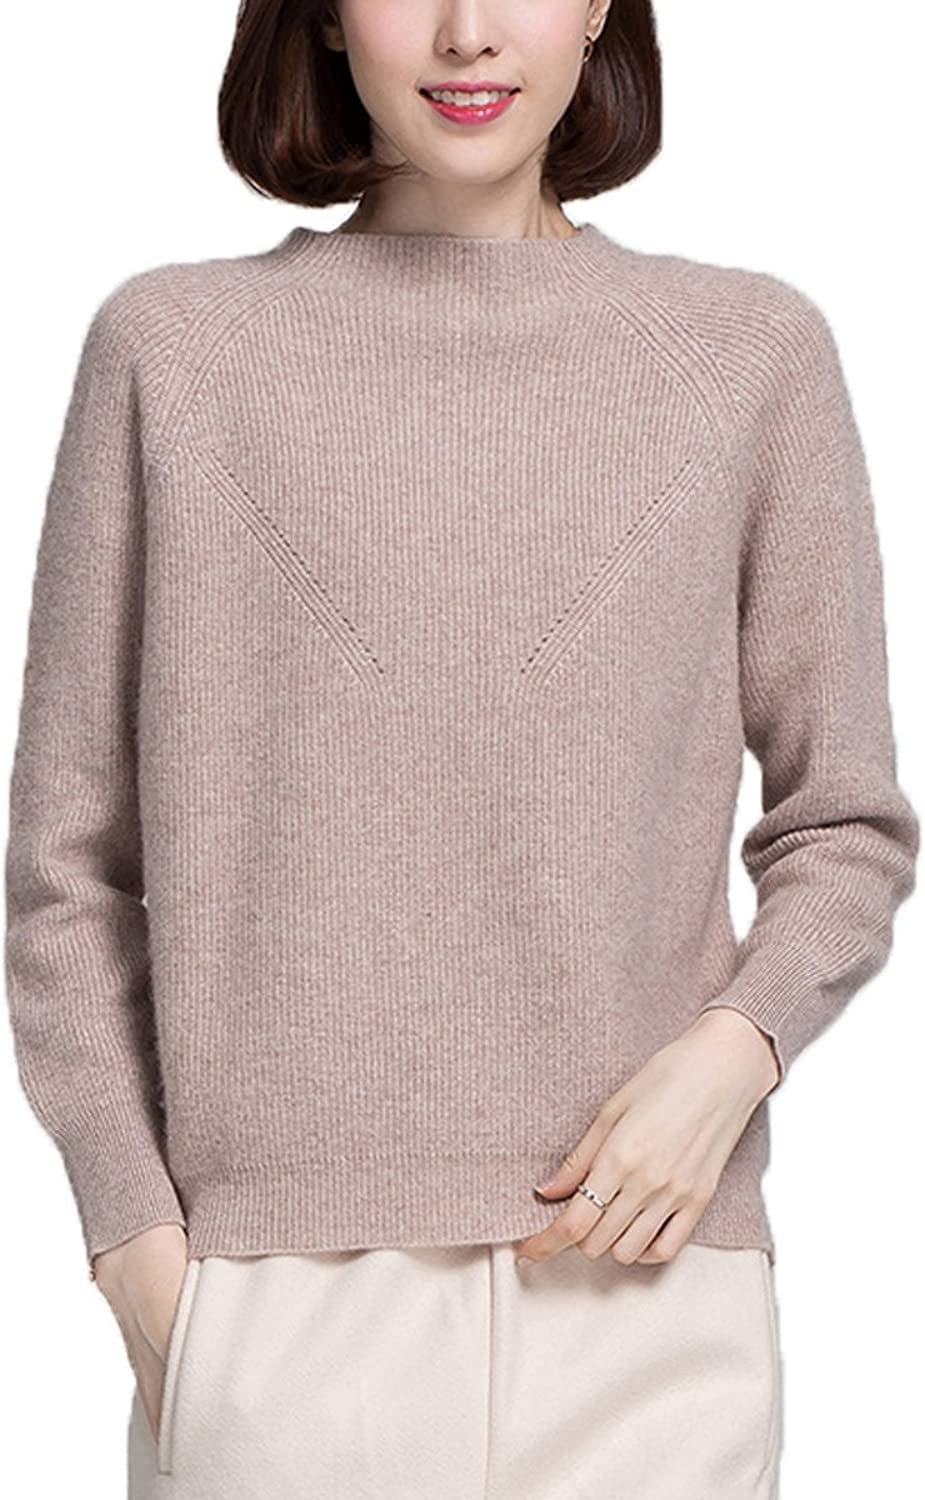 ALAPUSA Women's DiamondShaped Hollow Long Sleeve Cashmere Sweater